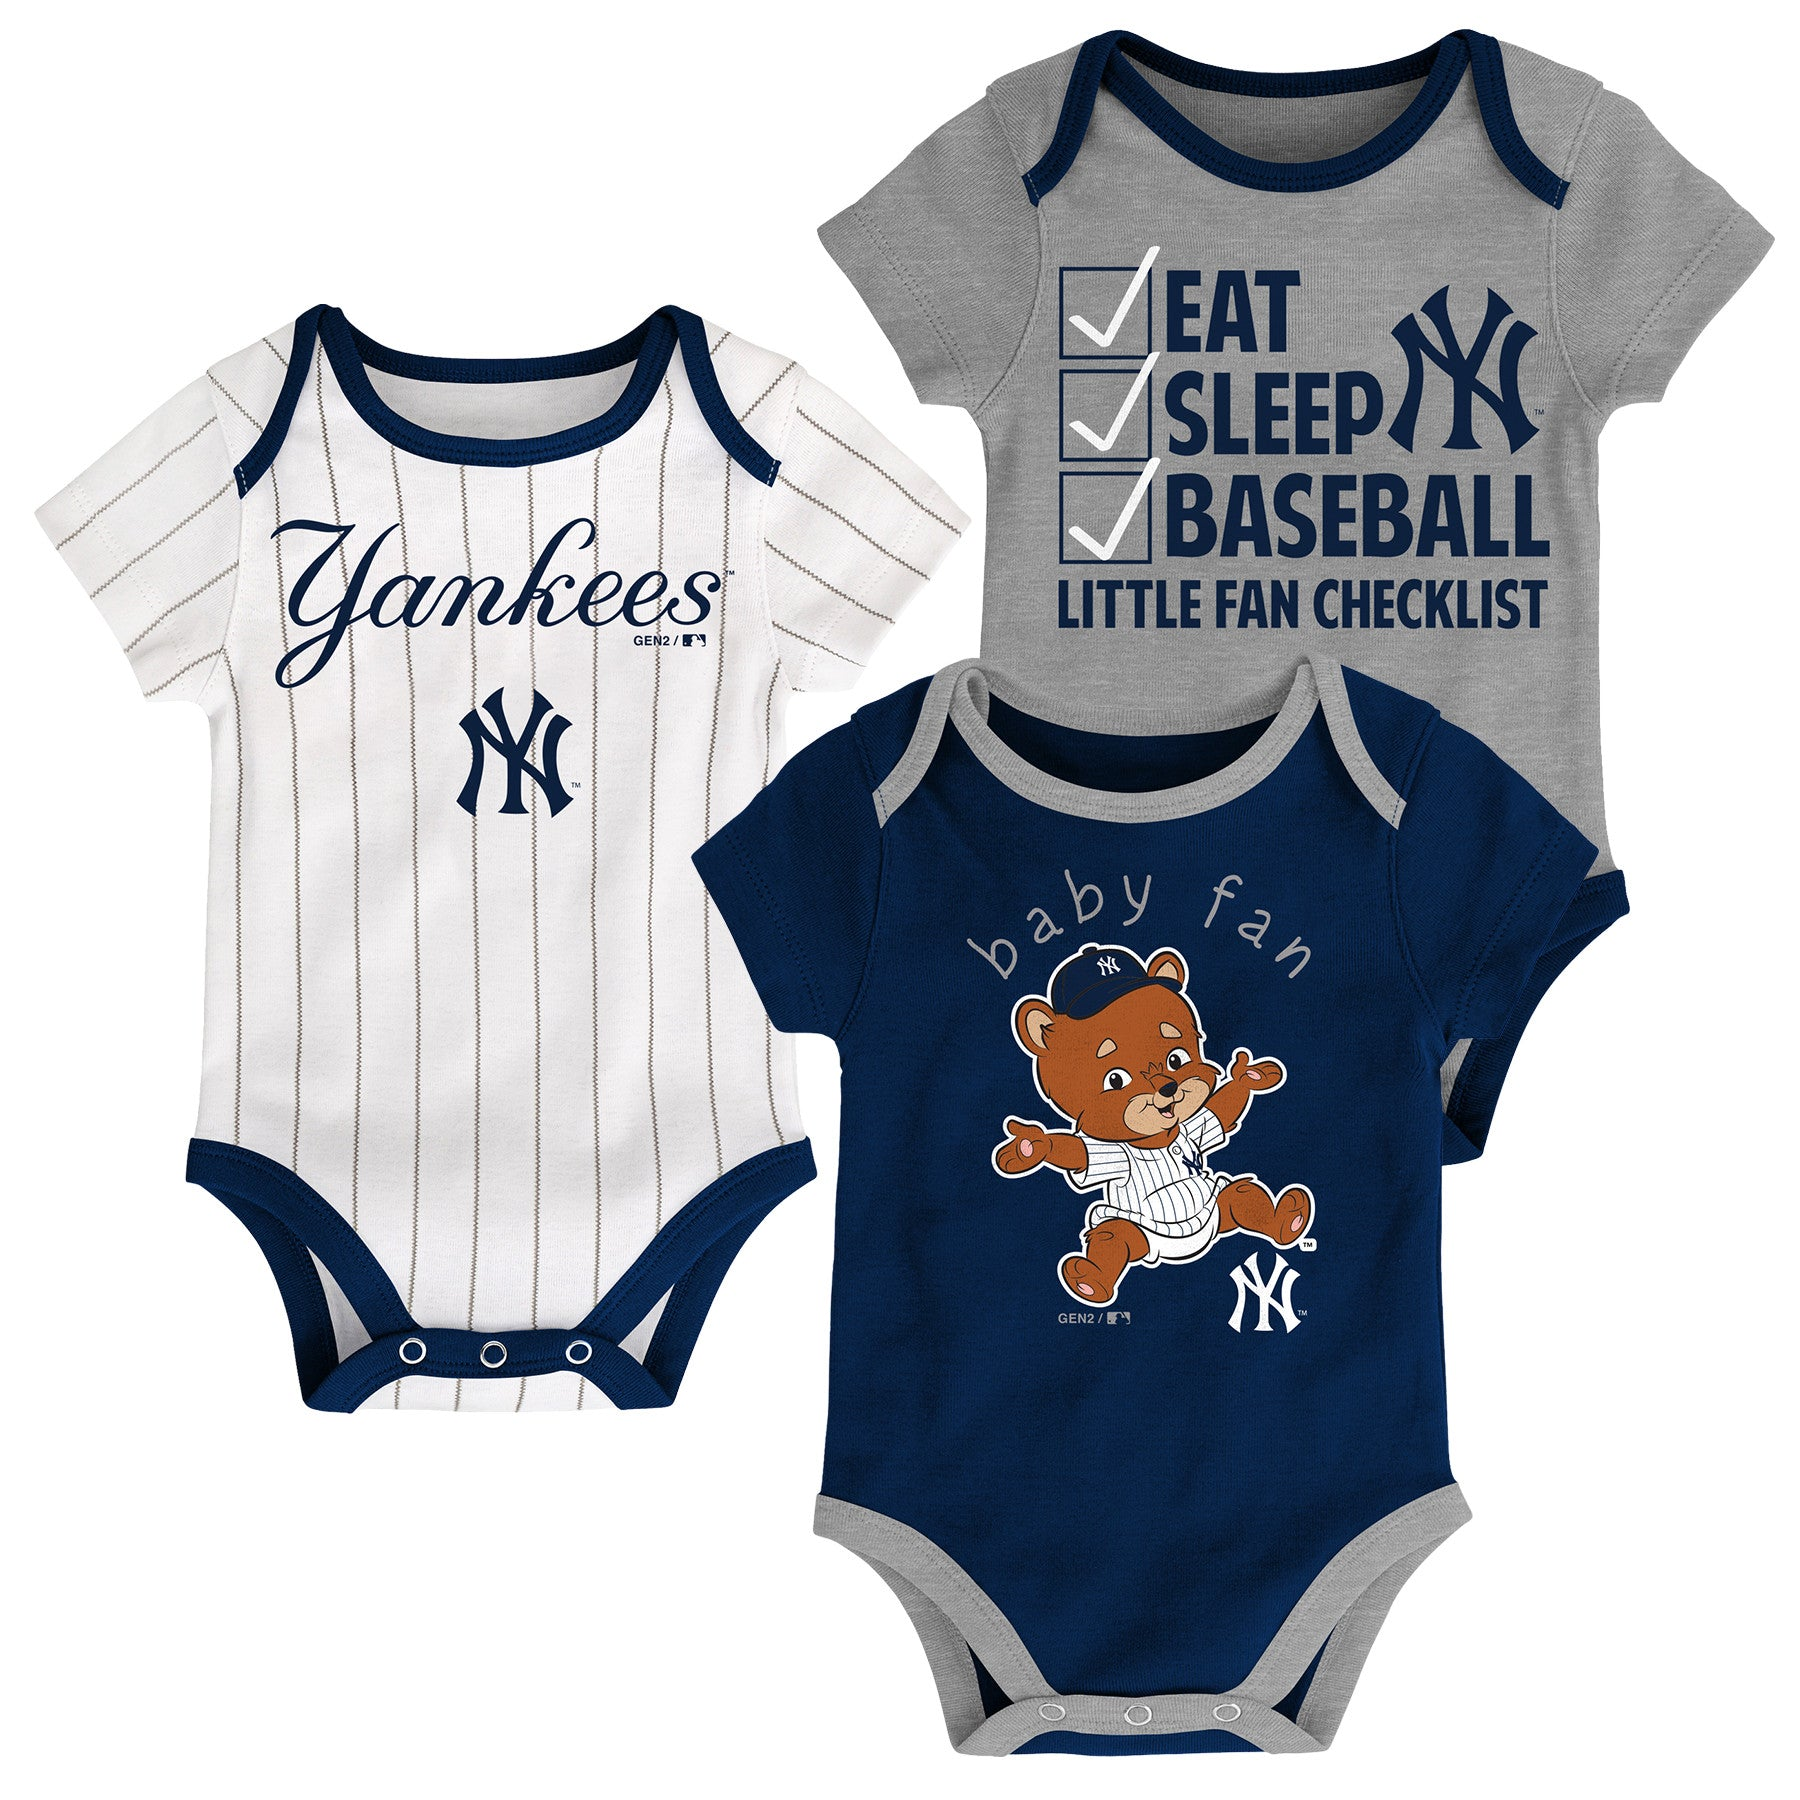 Yankees Baby Fan Mascot Creeper Set – babyfans 72bec2a7c